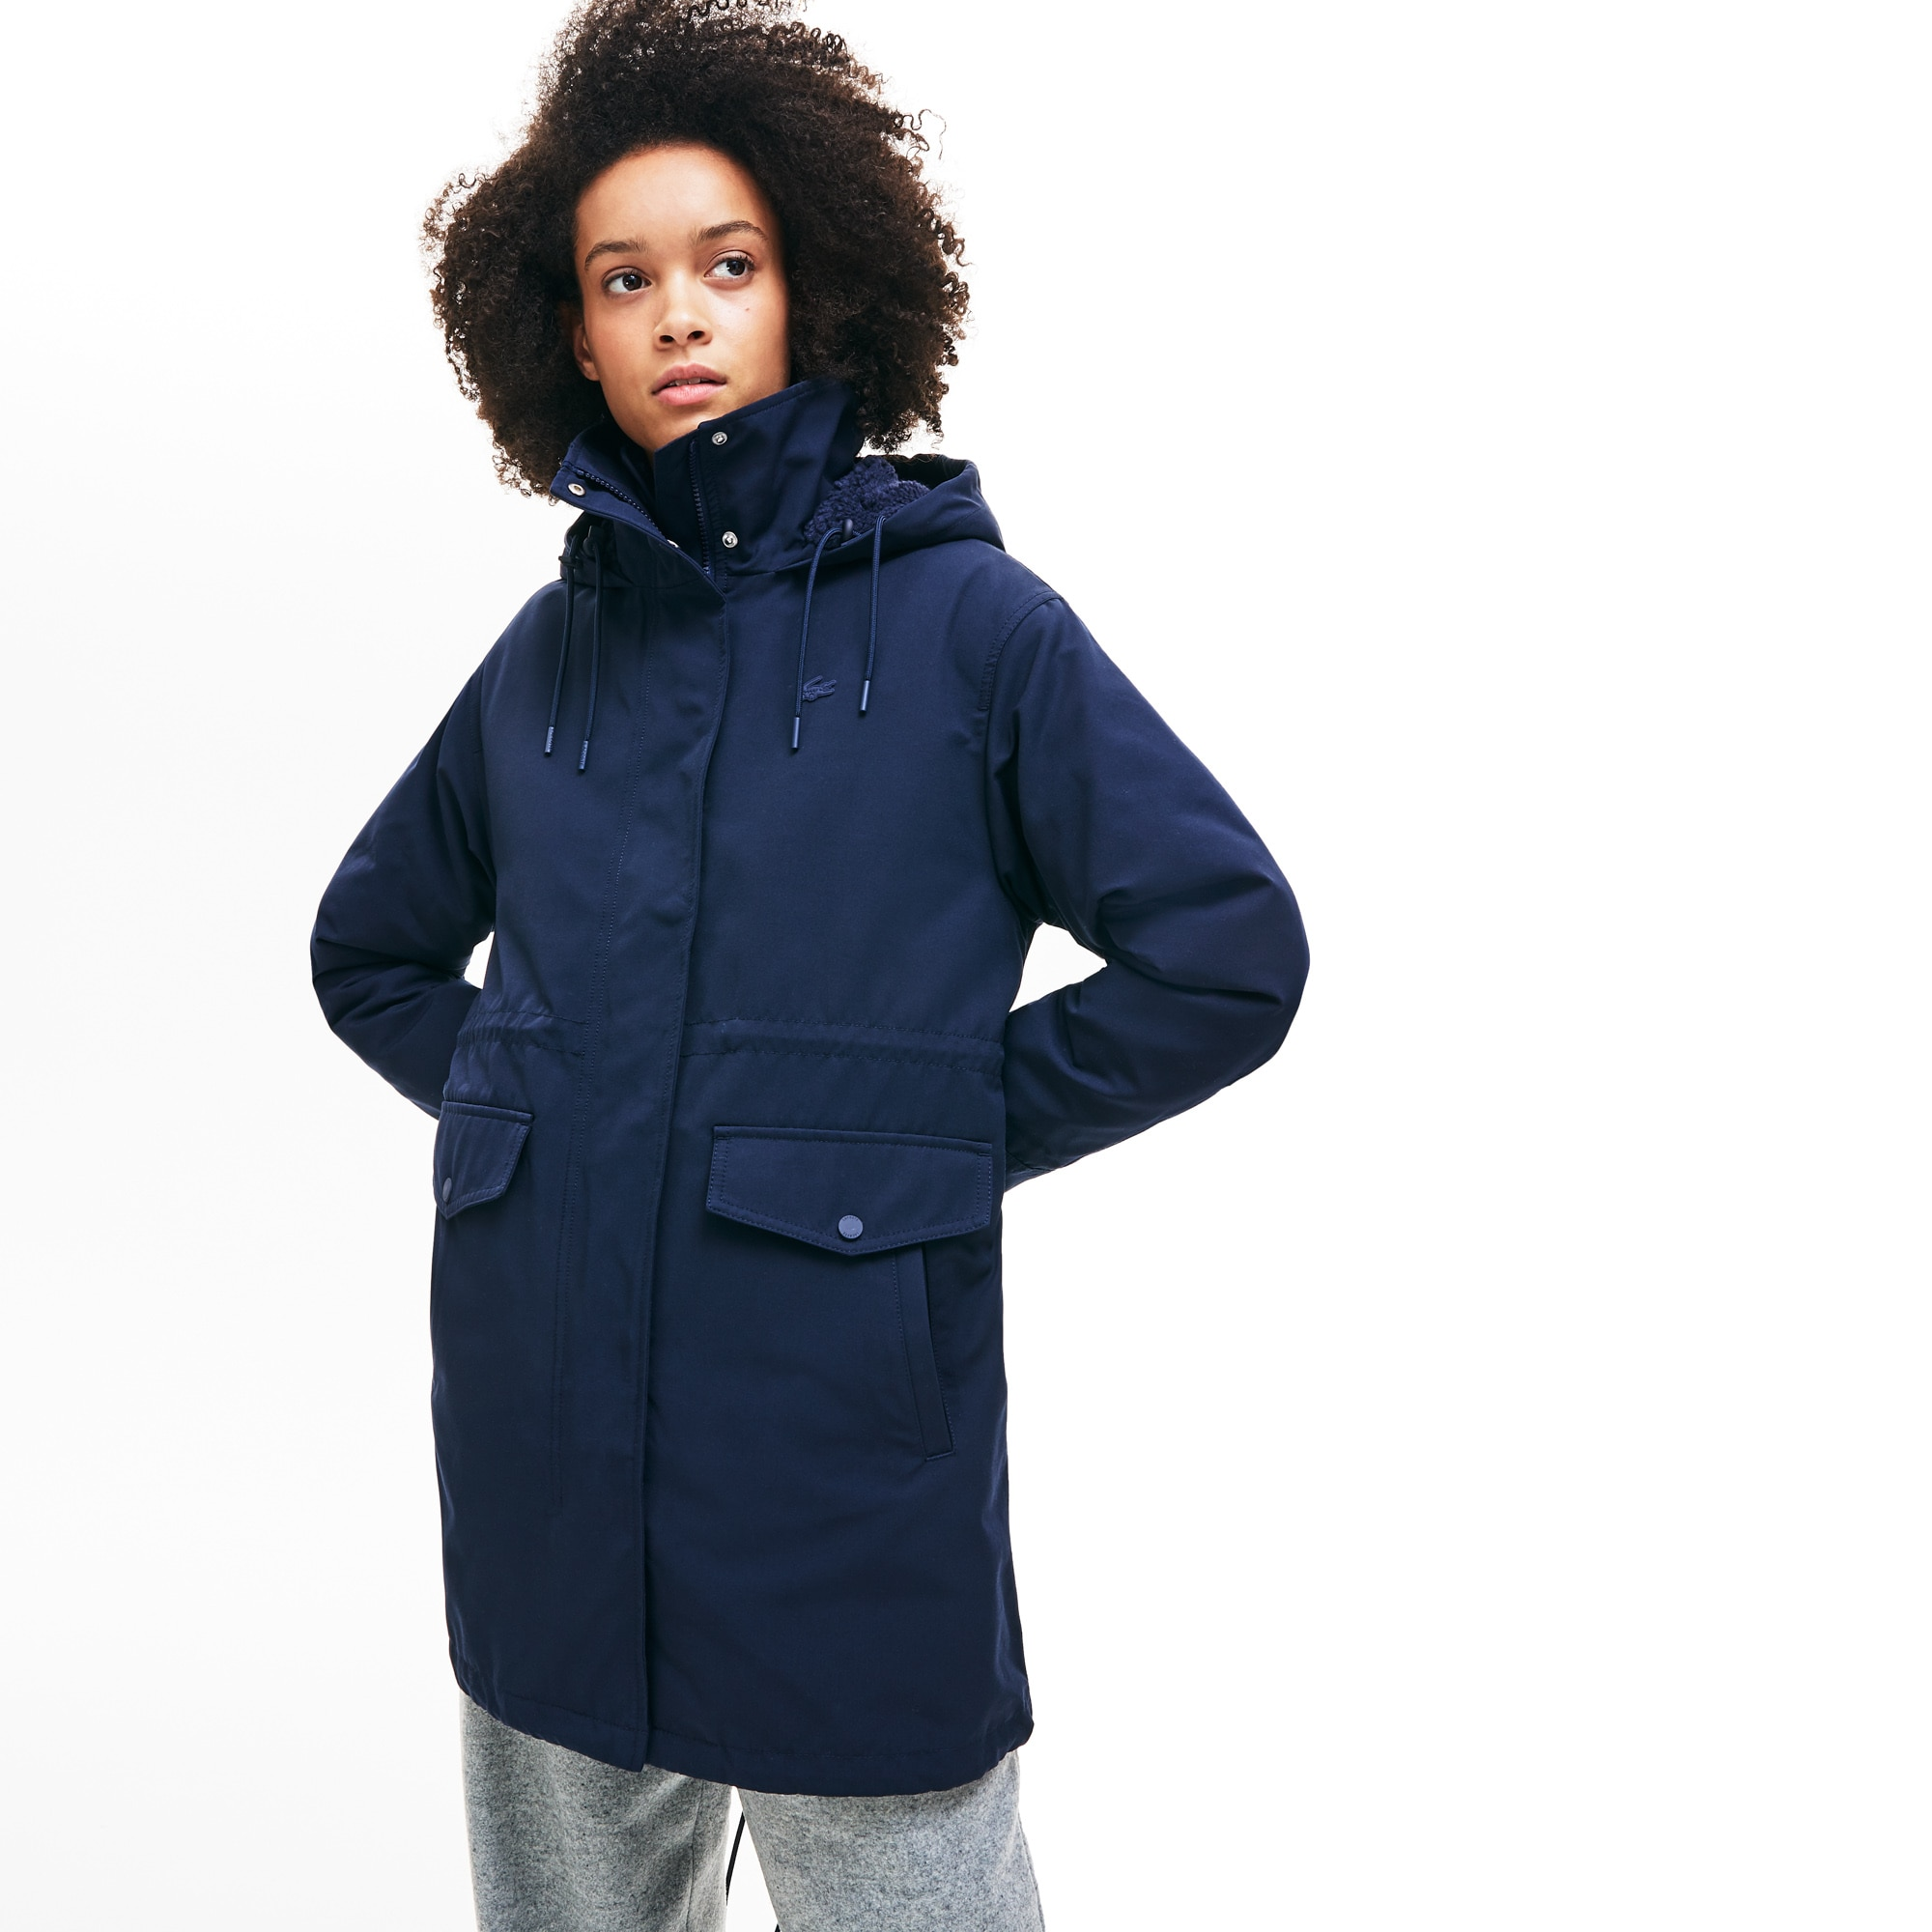 Women's 3-In-1 Detachable Quilted Jacket And Hooded Cotton Parka